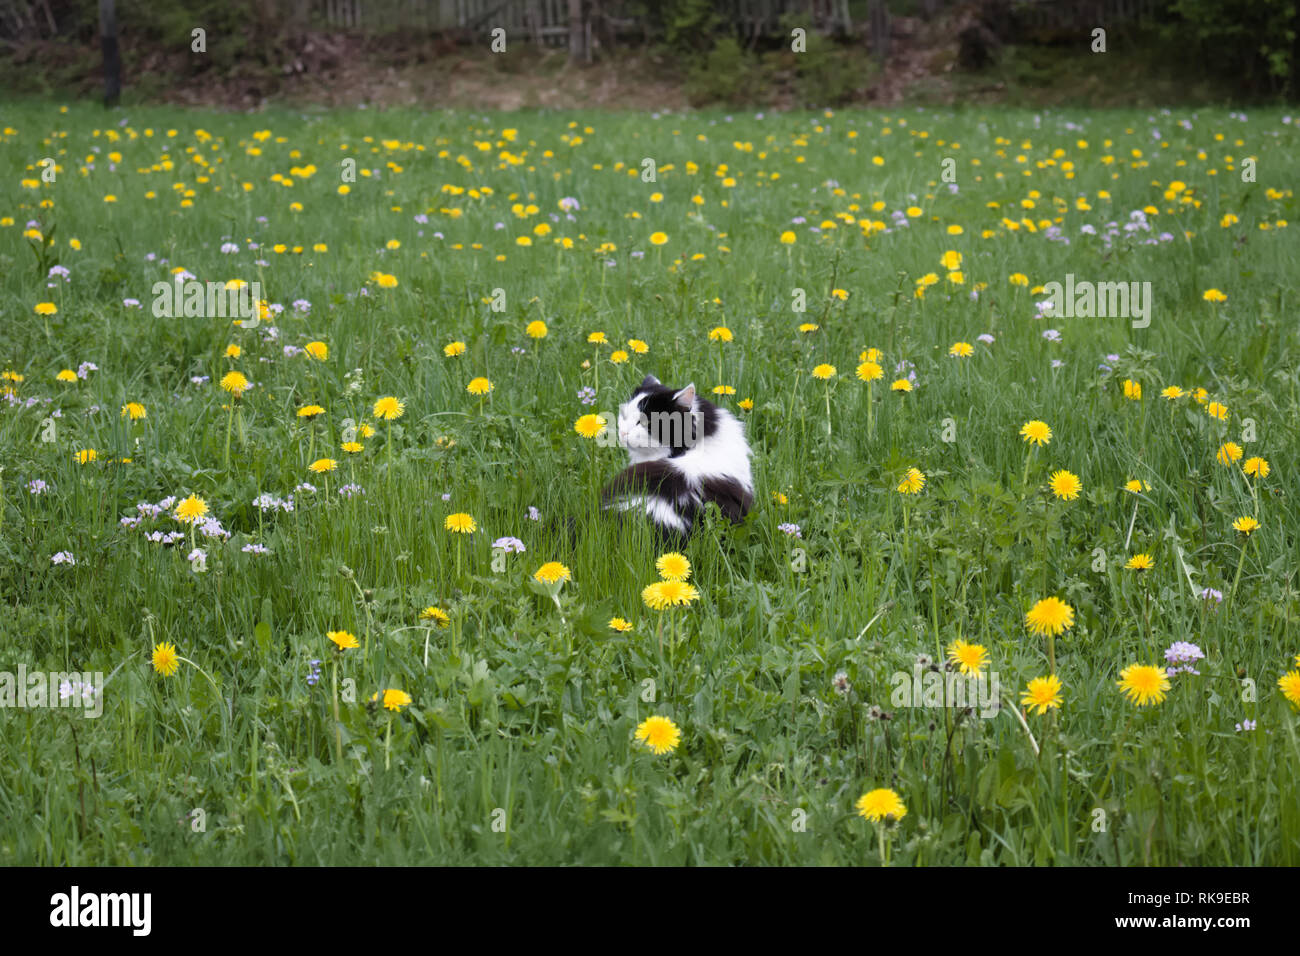 Black and white spotted longhaired cat in field of yellow dandelions. Stock Photo